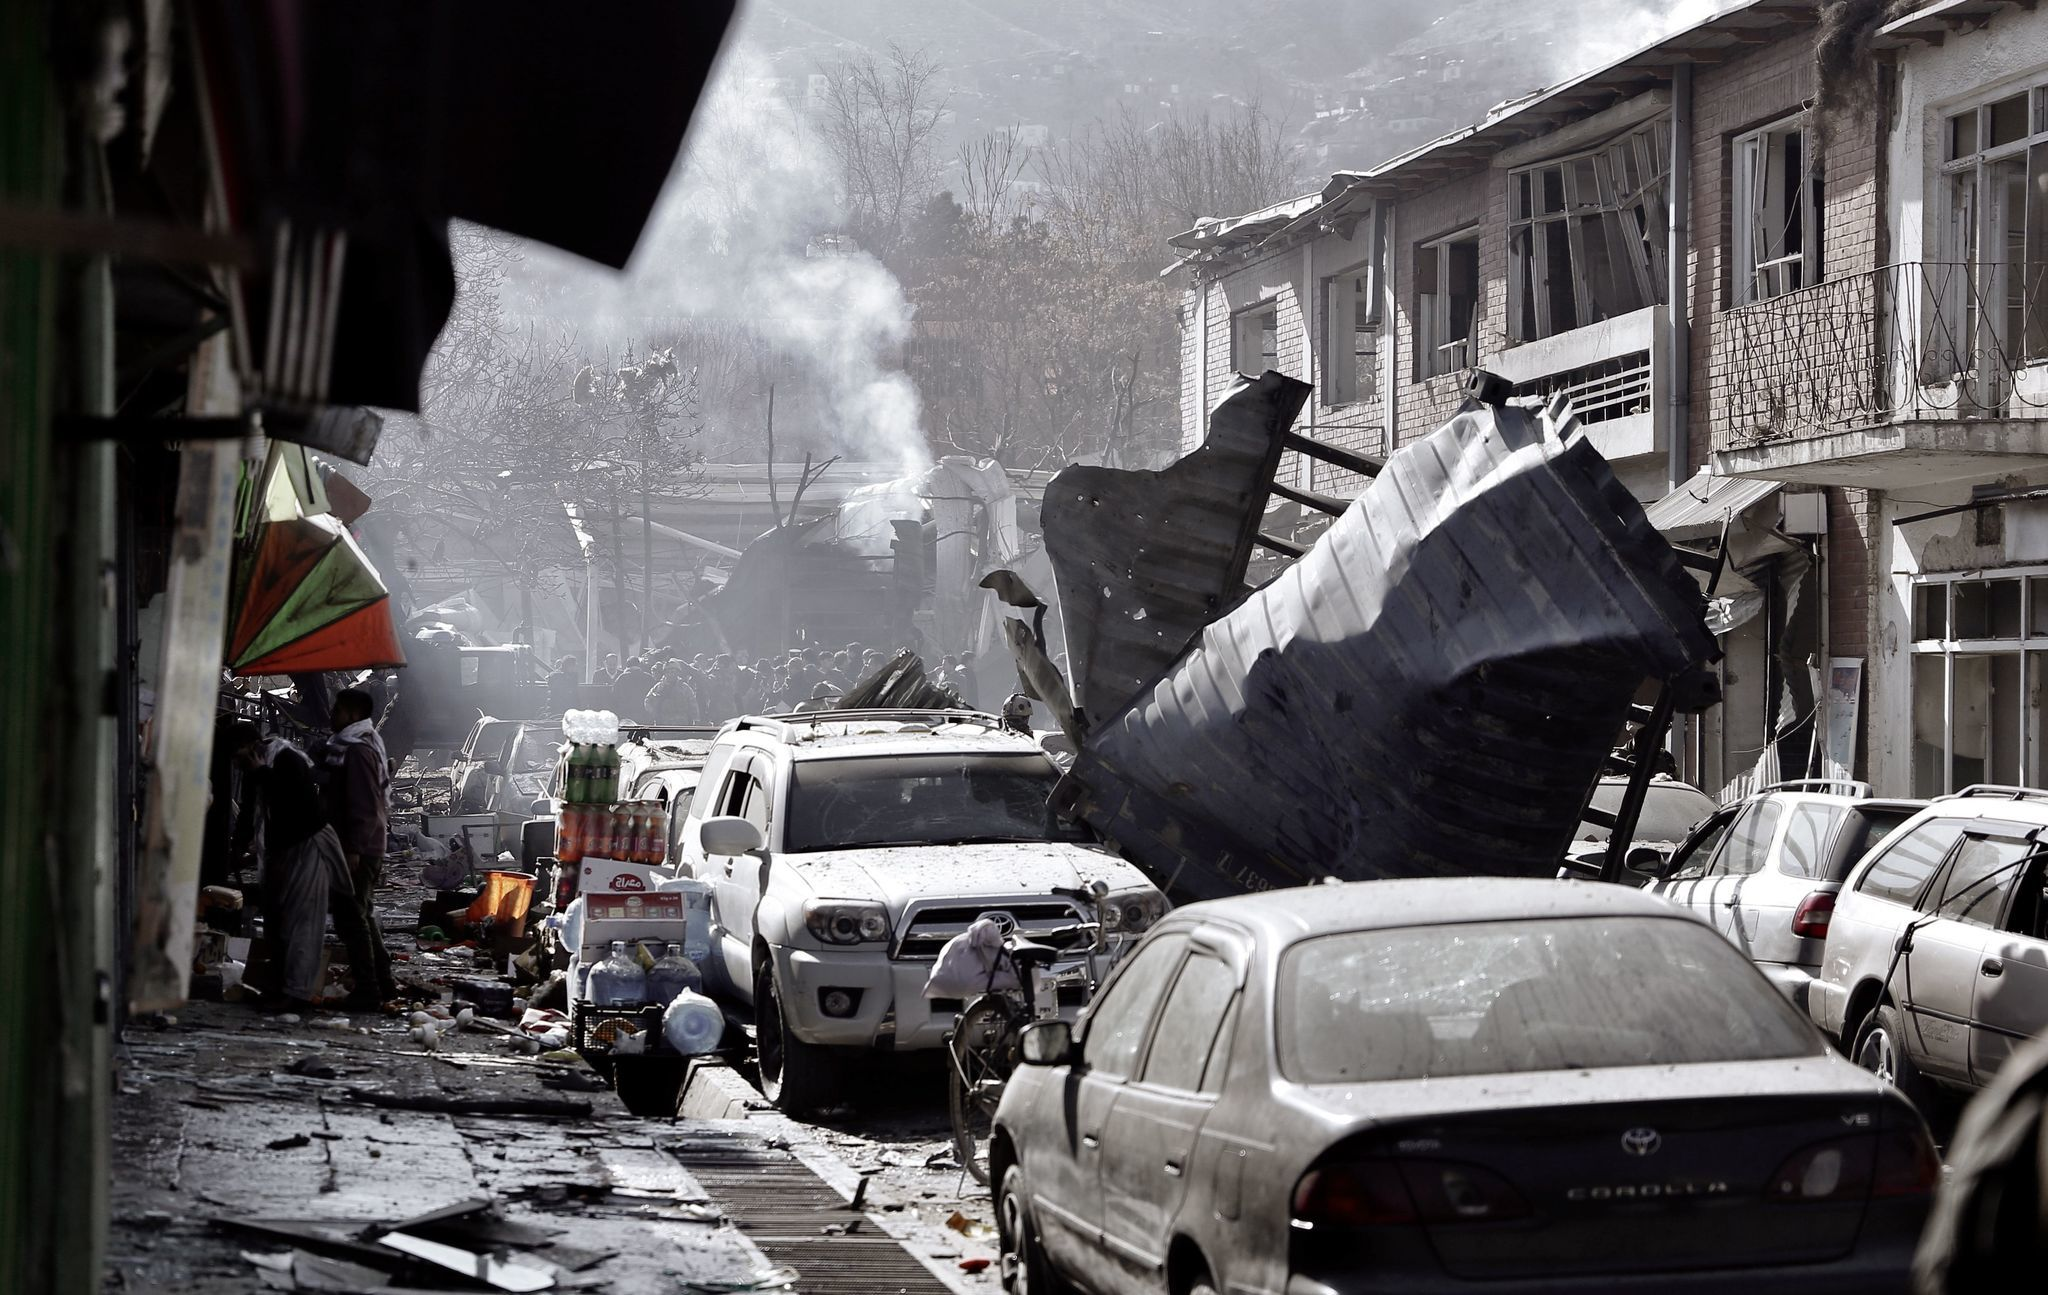 Aftermath of Saturday's bombing in Kabul. (Chicago Tribune)